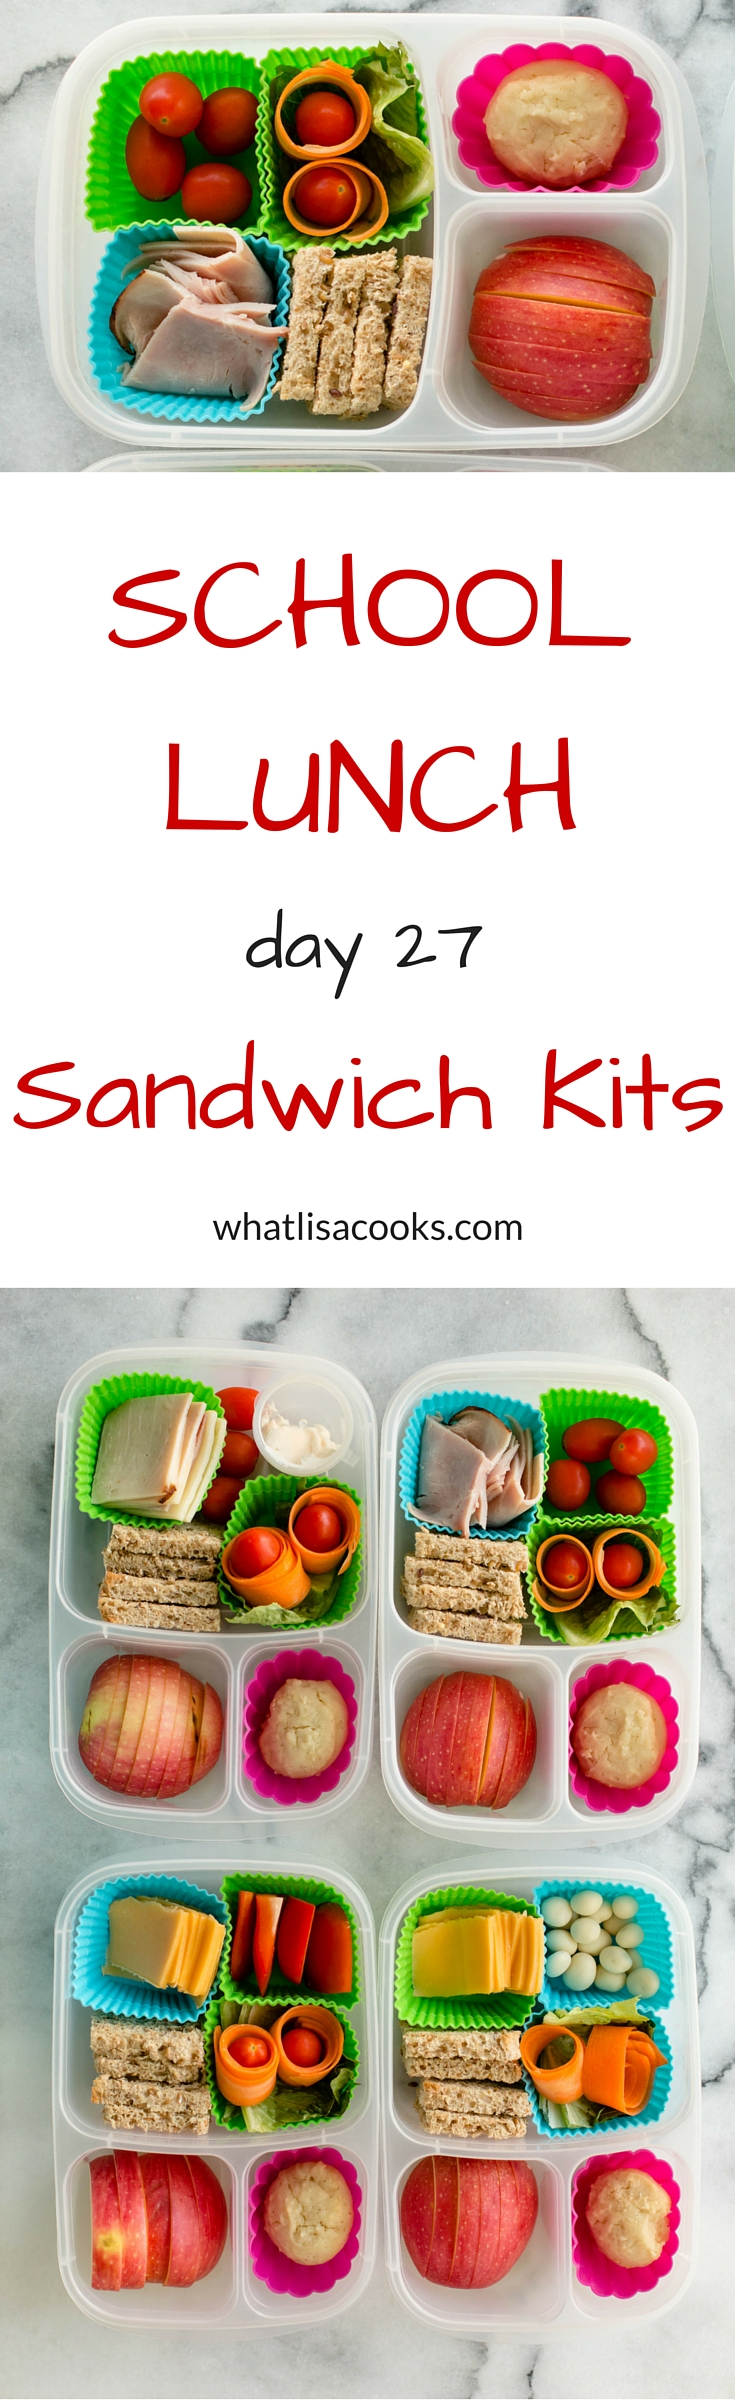 An easy twist on the classic sandwich: pack them a school lunch box with all the pieces of the sandwich, and let them assemble it themselves! whatlisacooks.com